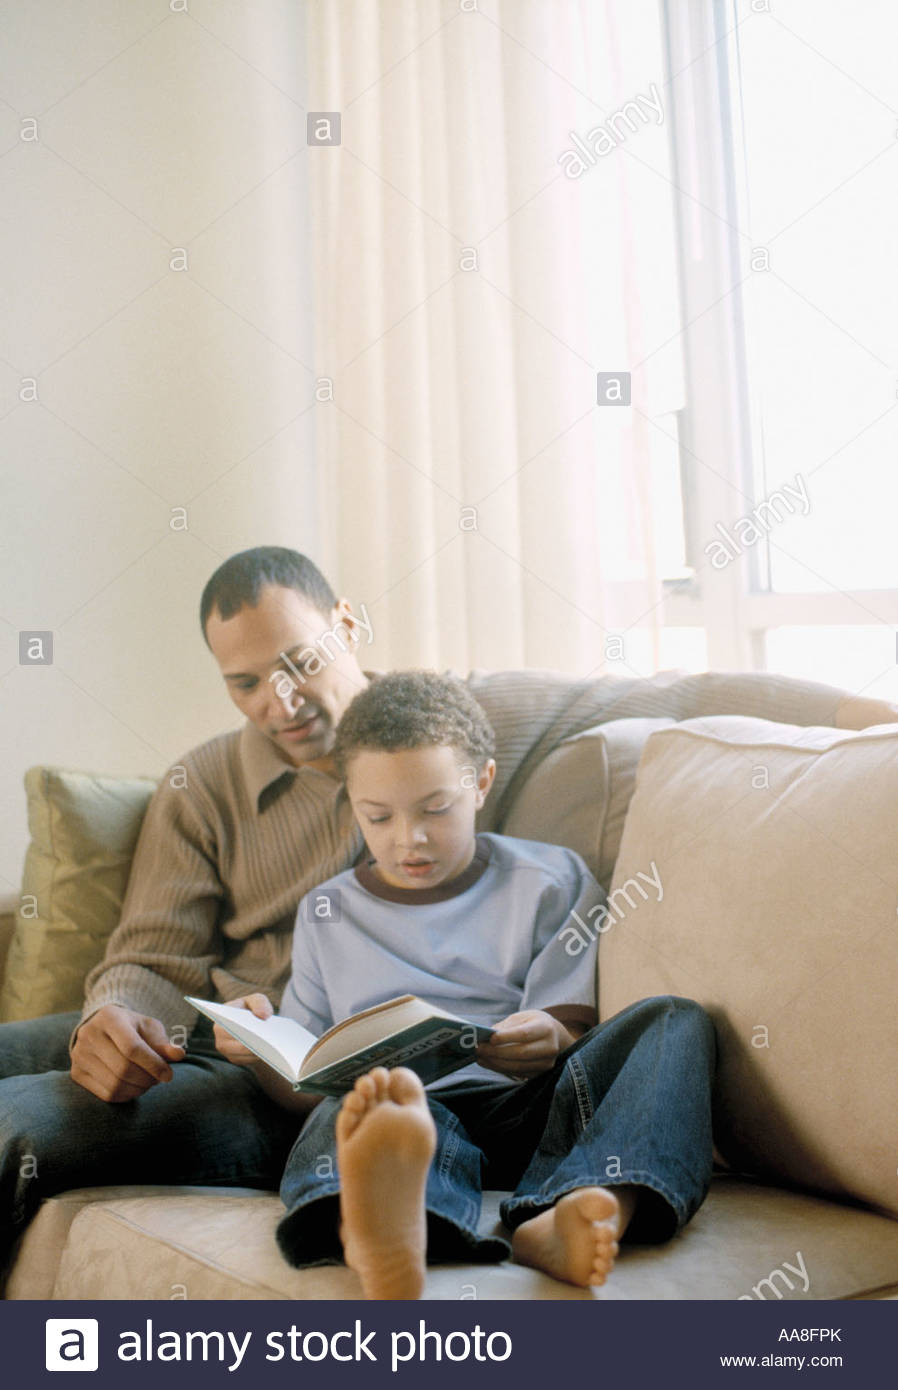 African father and son reading on sofa - Stock Image